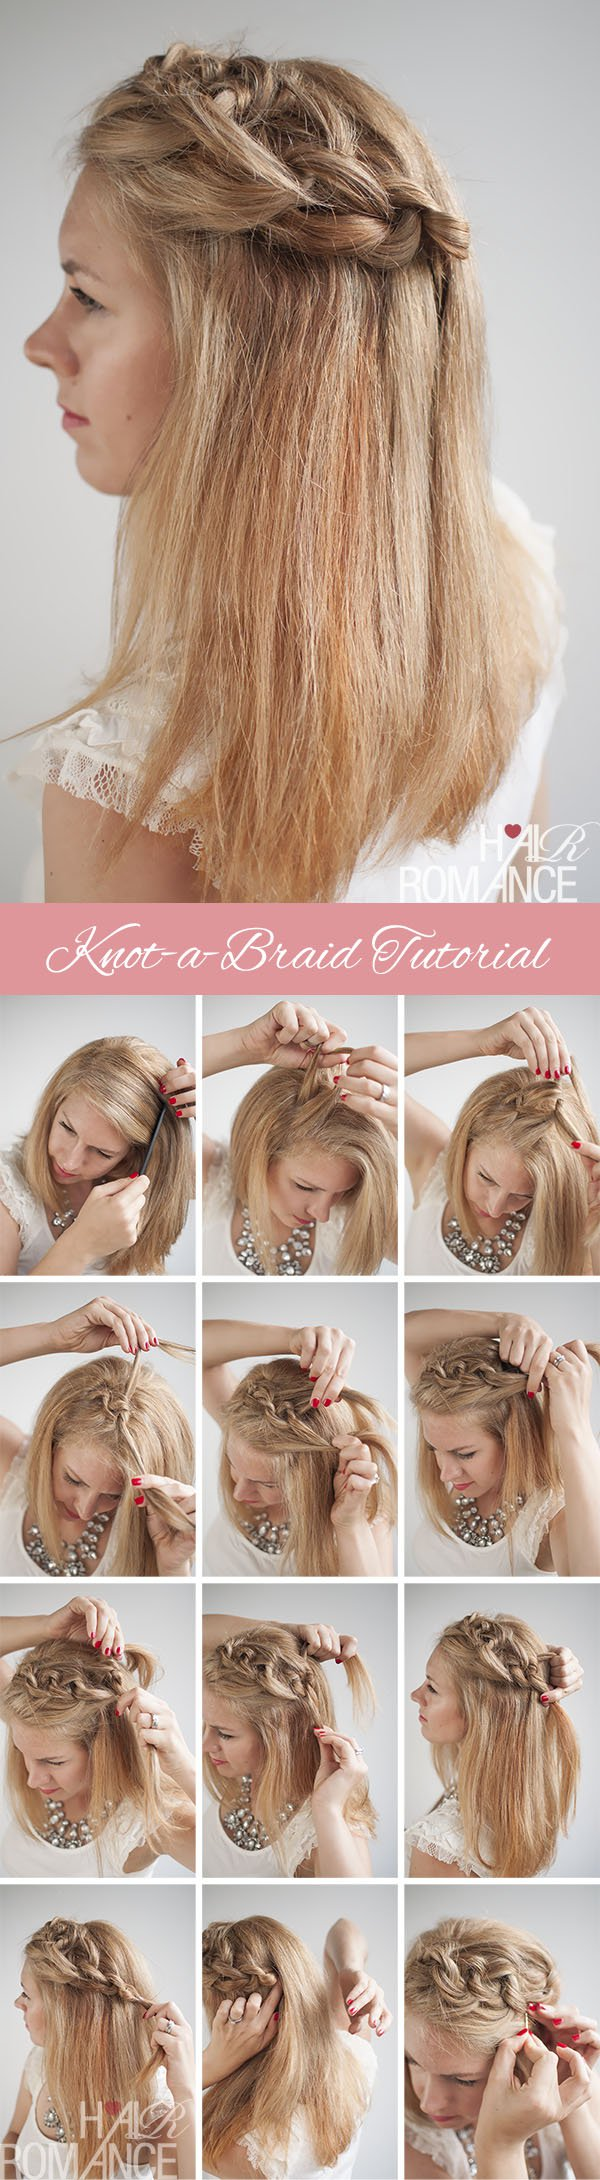 Tutorial for knotted braided hairstyles